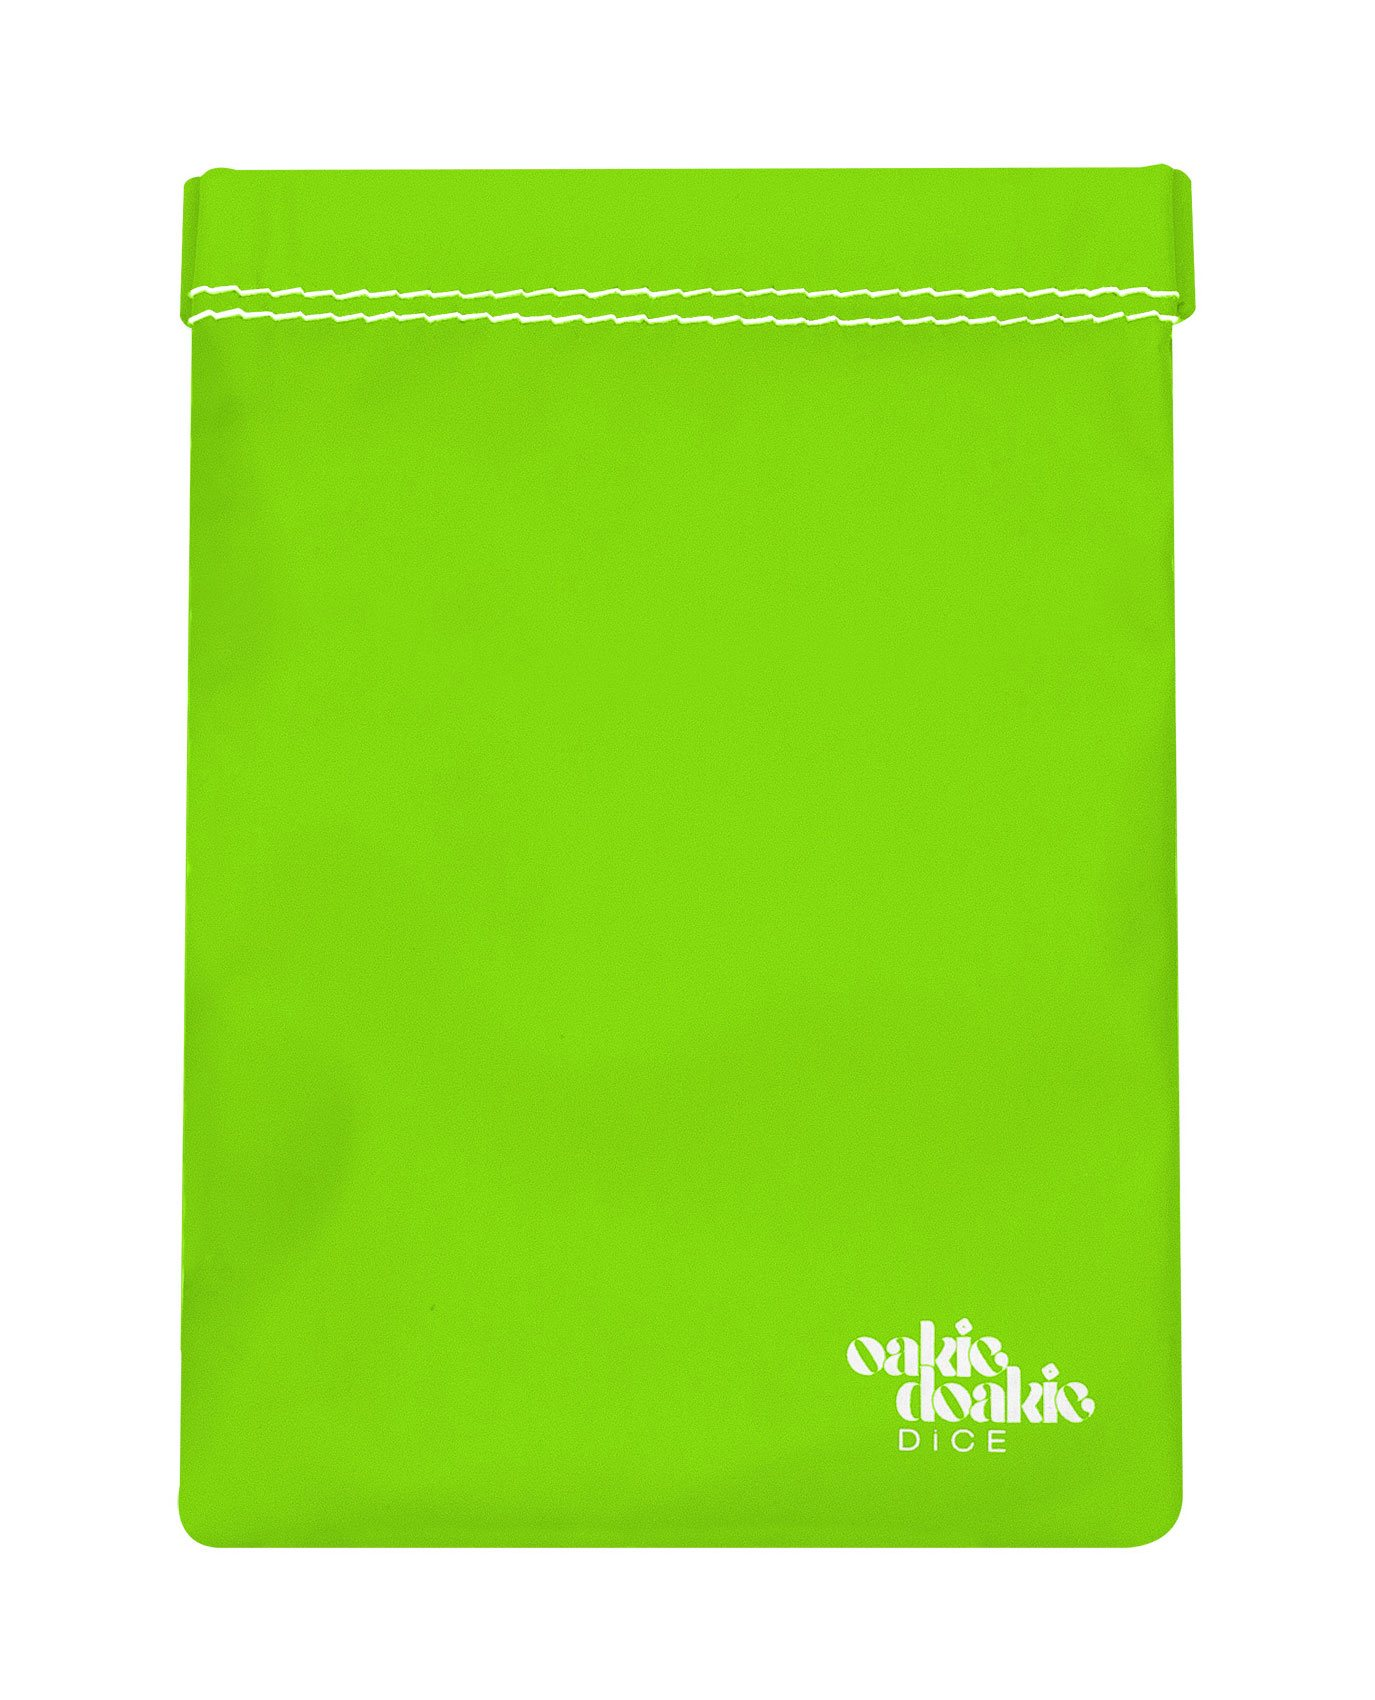 Oakie Doakie Dice Bag large - light green